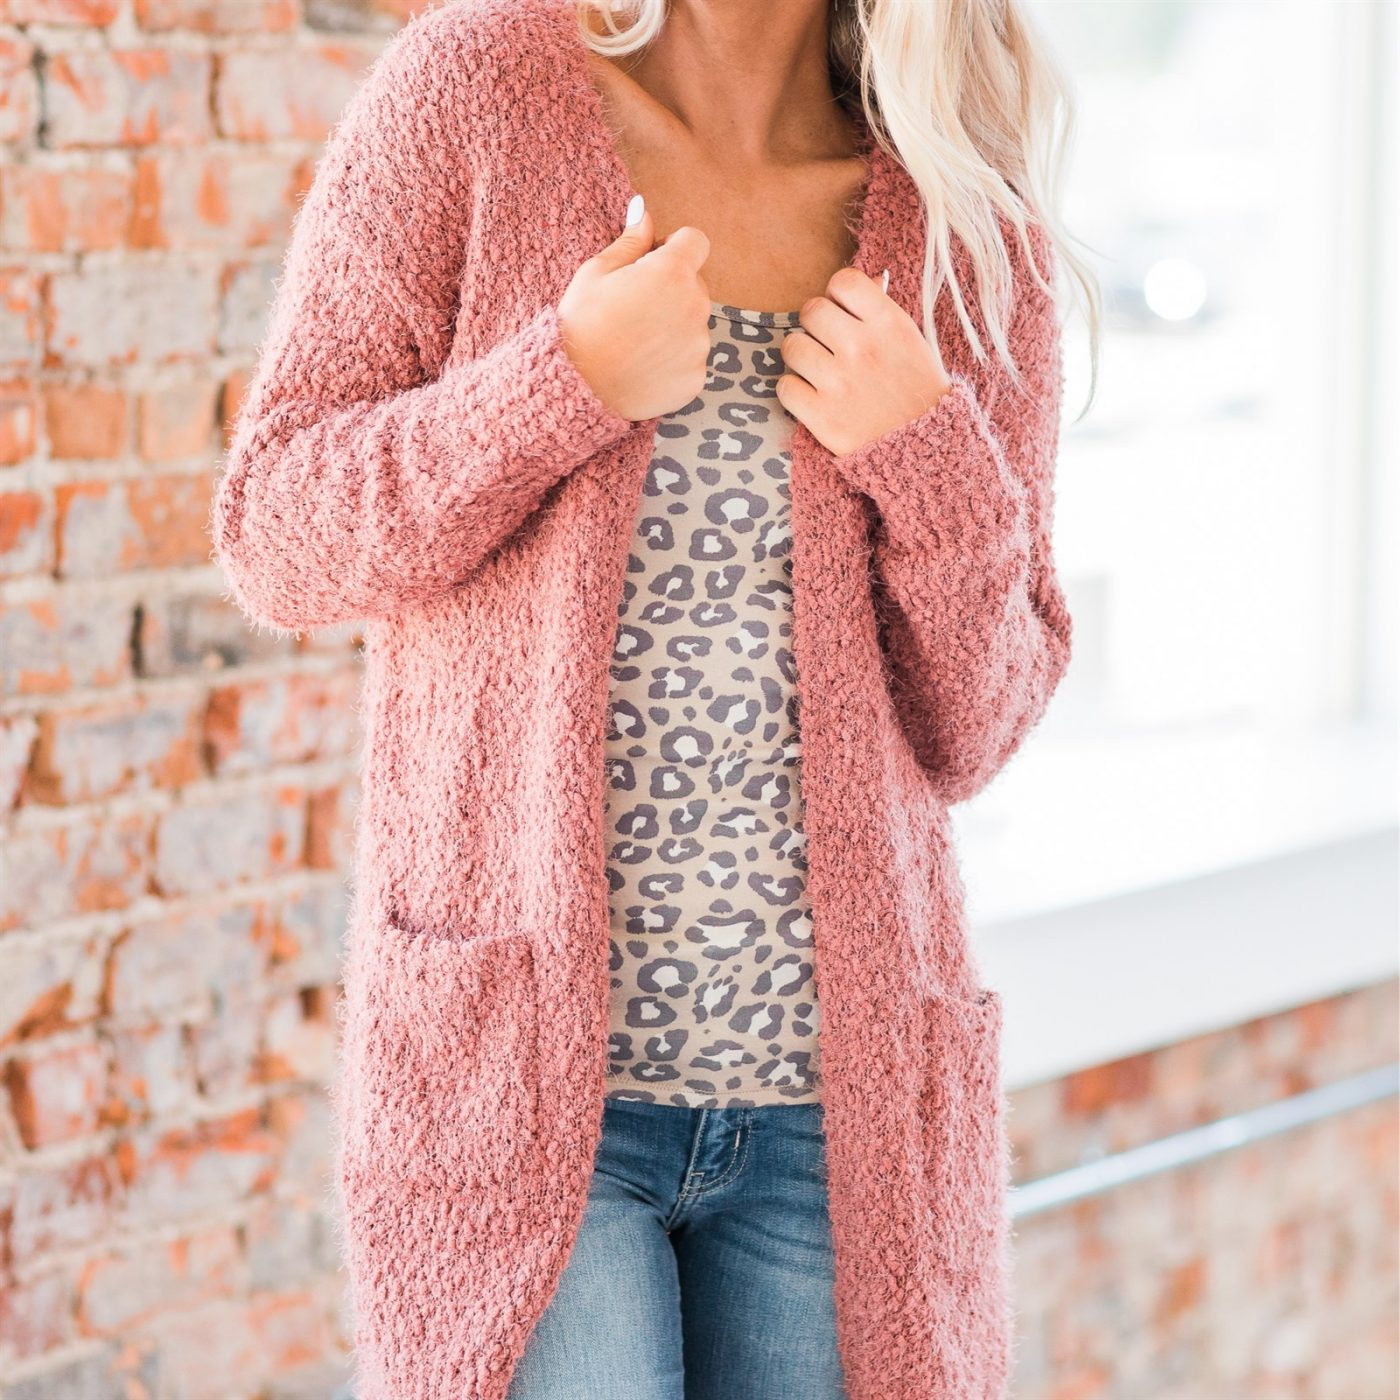 Was $59.99 - Now $28.99 - Lara Luxe Popcorn Cardigan | Free Shipping (10/16 to 10/18)